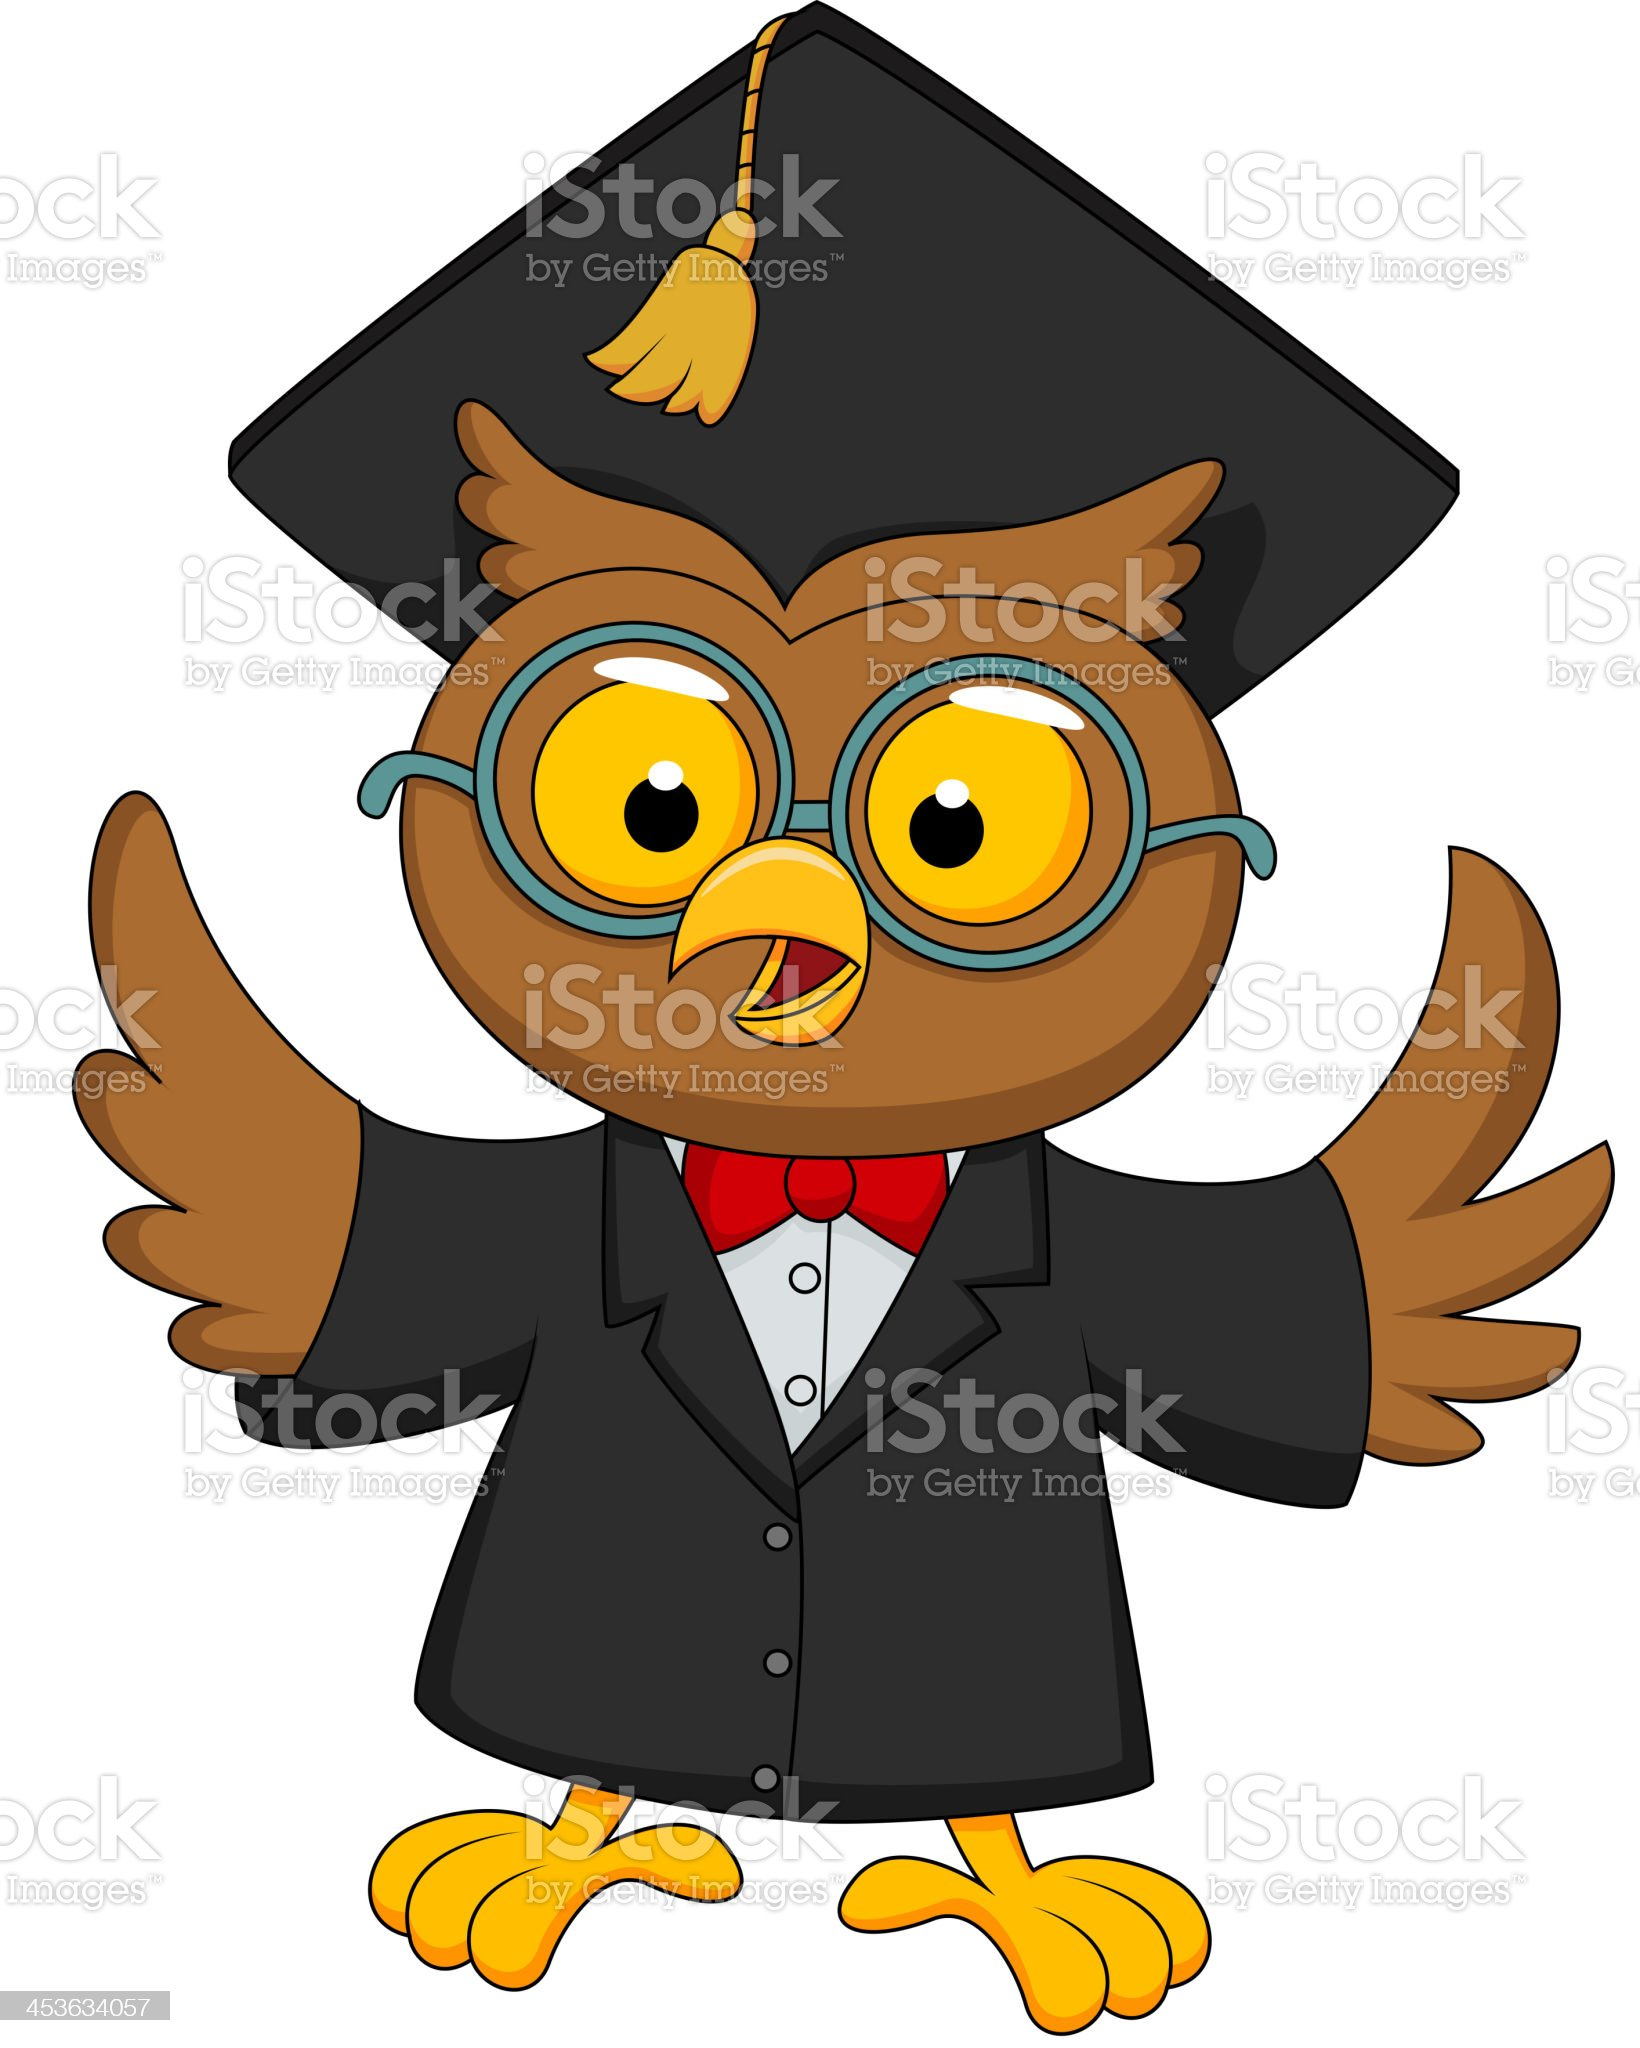 Wise owl cartoon royalty-free stock vector art